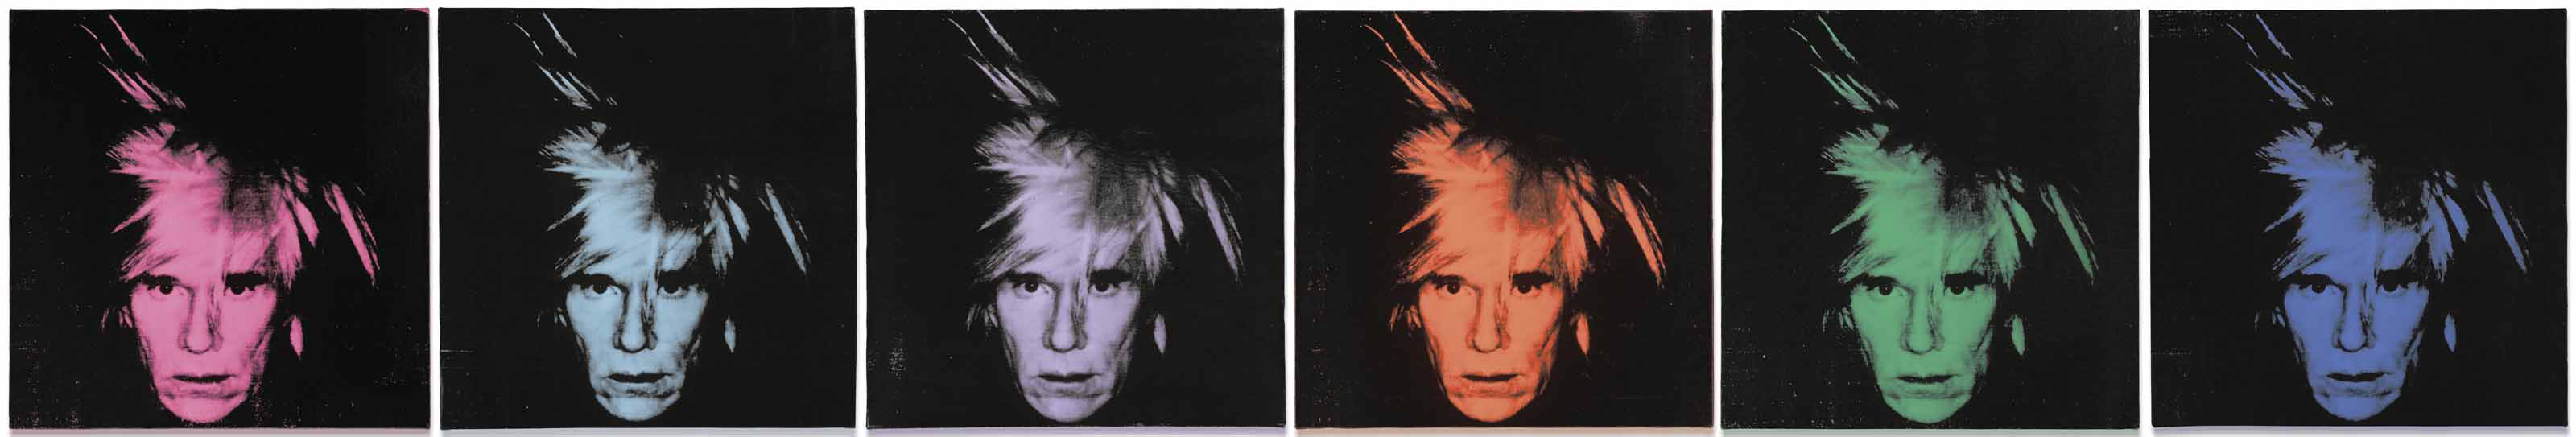 Andy Warhol (1928-1987), Six Self-Portraits, executed in 1986. Each 22 x 22 in (56 x 56 cm). Sold for £22,261,250 in the Post-War and Contemporary Art Evening Auction on 6 March 2018  at Christie's in London © 2018 The Andy Warhol Foundation for the Visual Arts, Inc.  Licensed by DACS, London